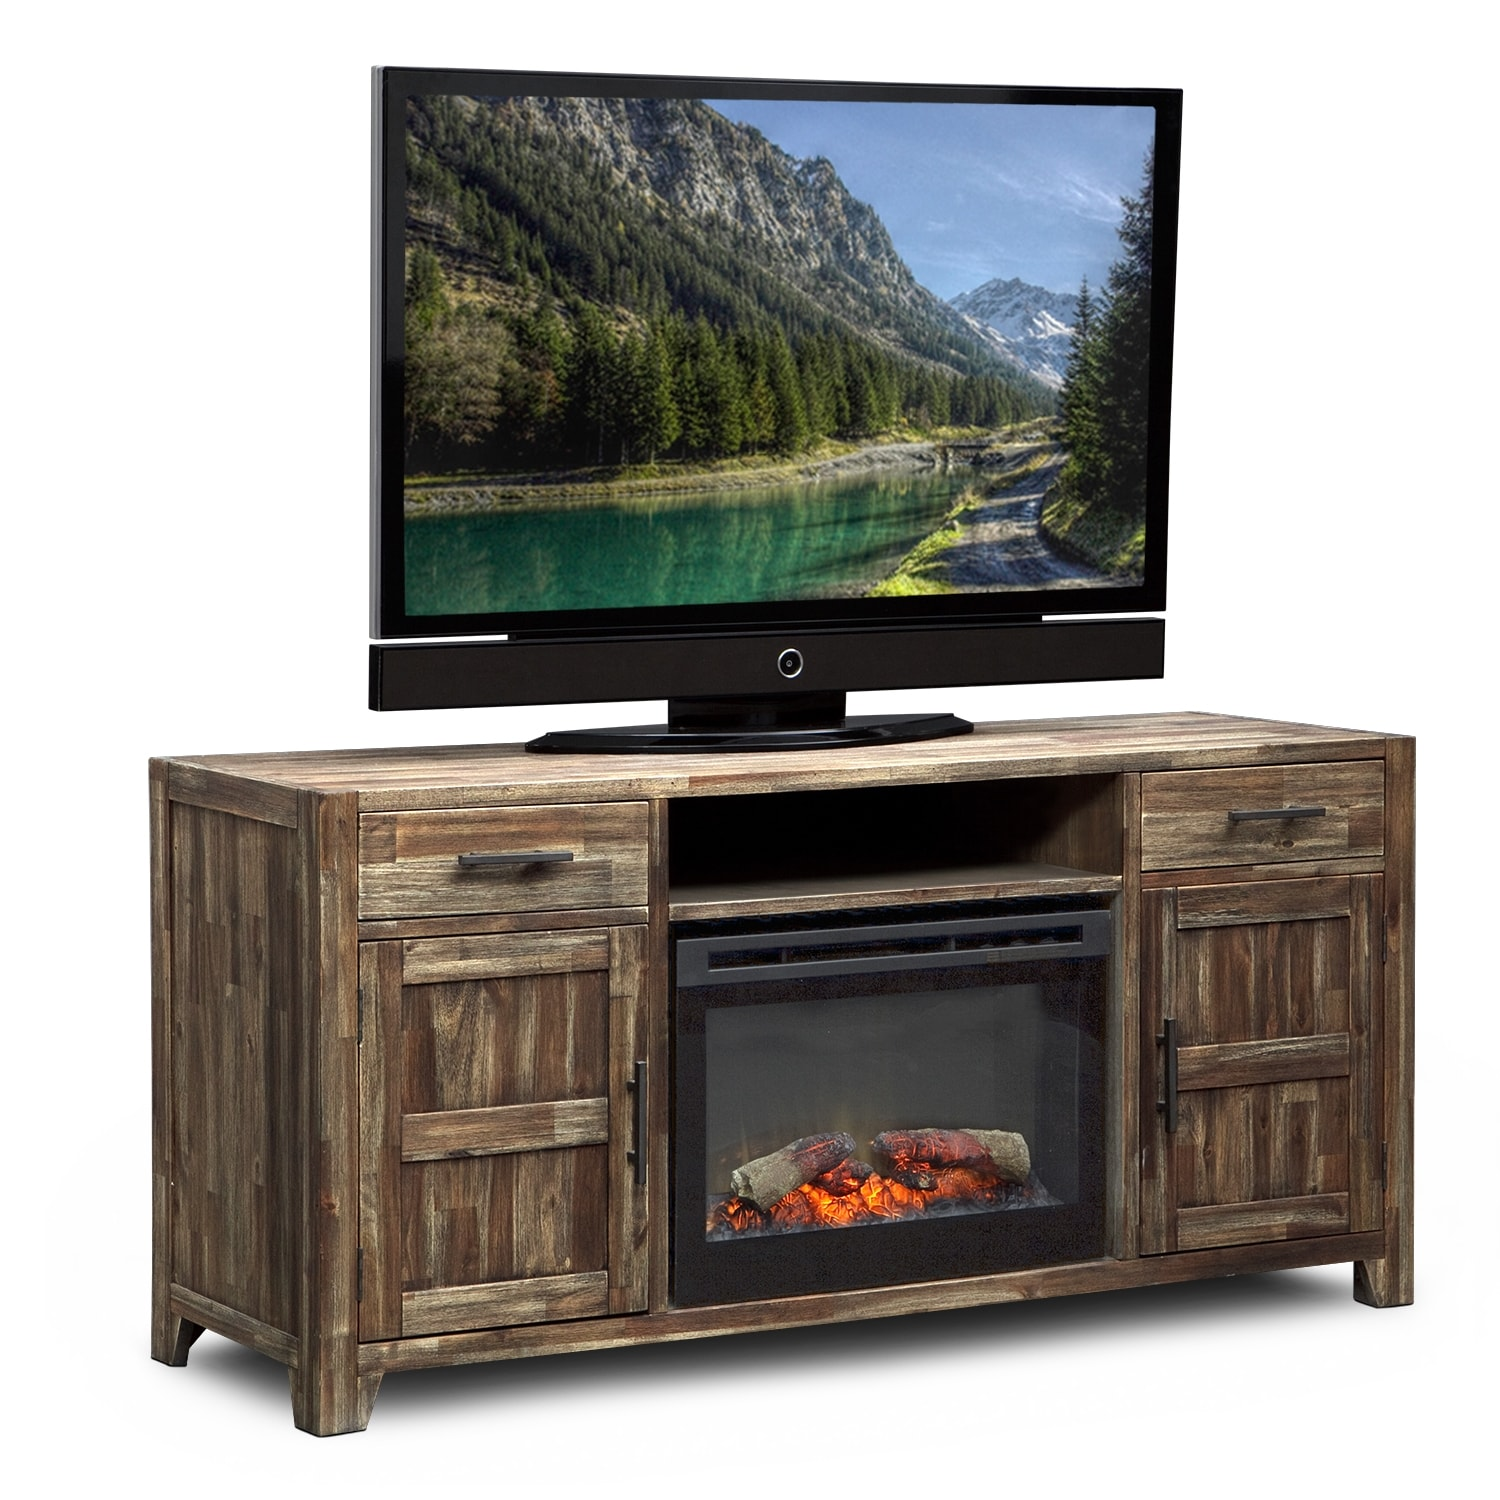 Entertainment Furniture - Brentwood Fireplace TV Stand in Traditional Insert - Medium Brown